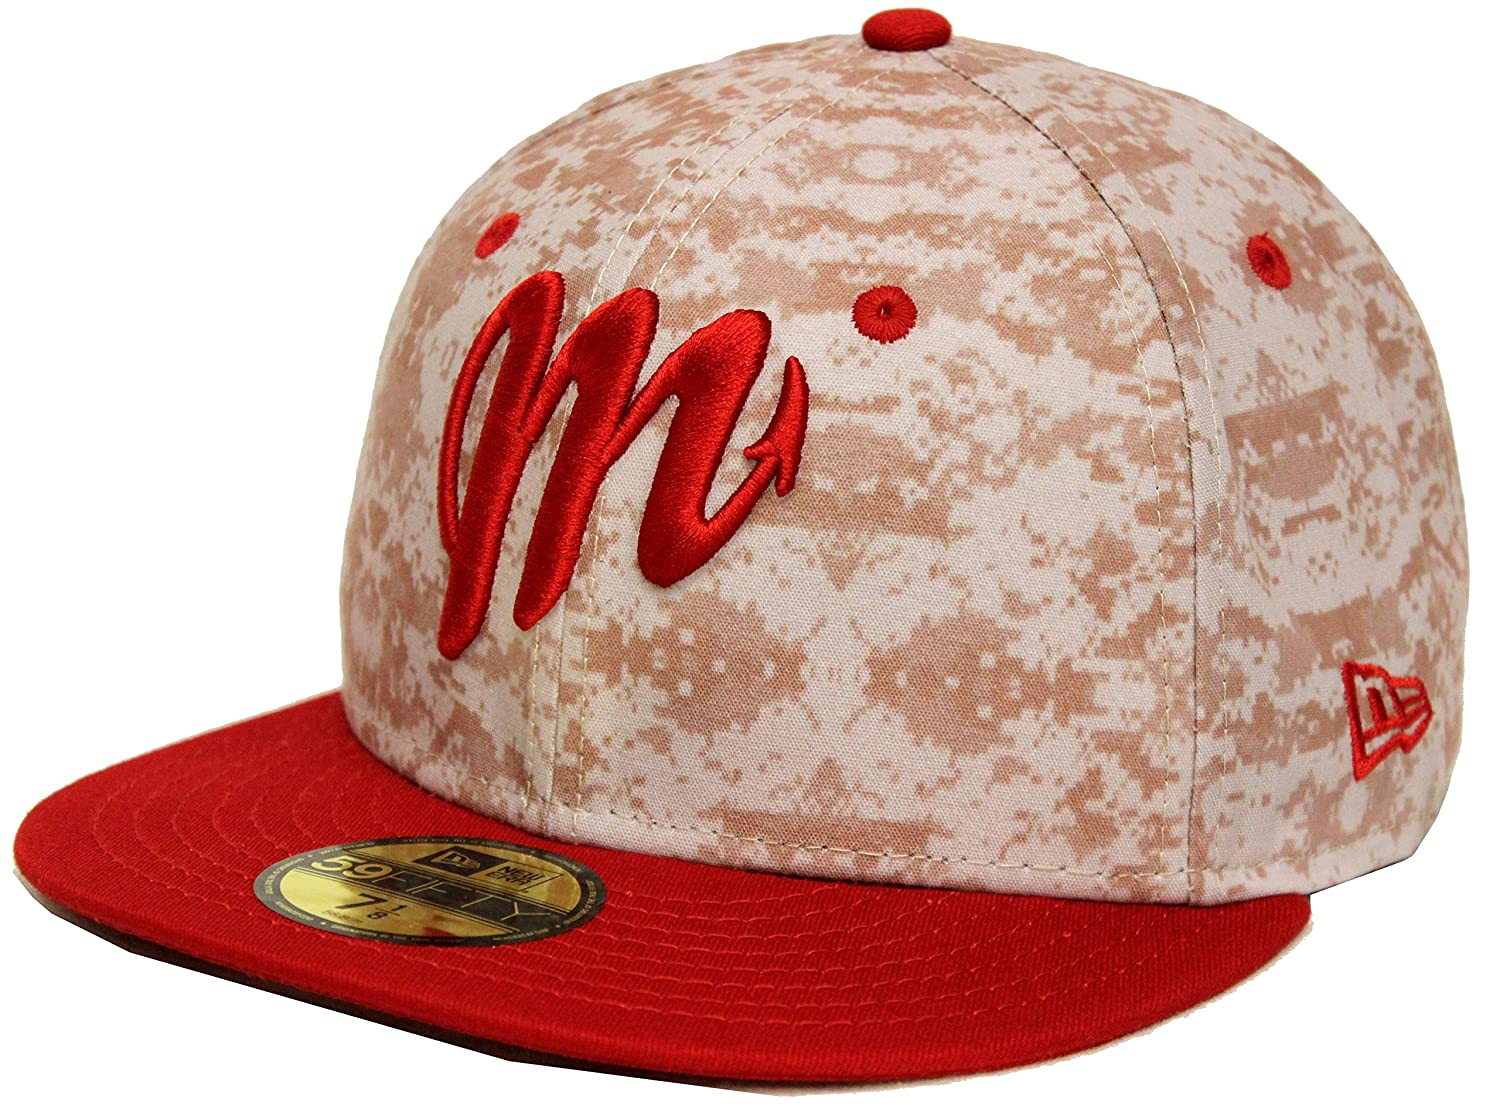 New Era 59Fifty Piratas de Campeche Red Fitted Cap (7 3 4) at Amazon Men s  Clothing store  7cae0e6ebaa2